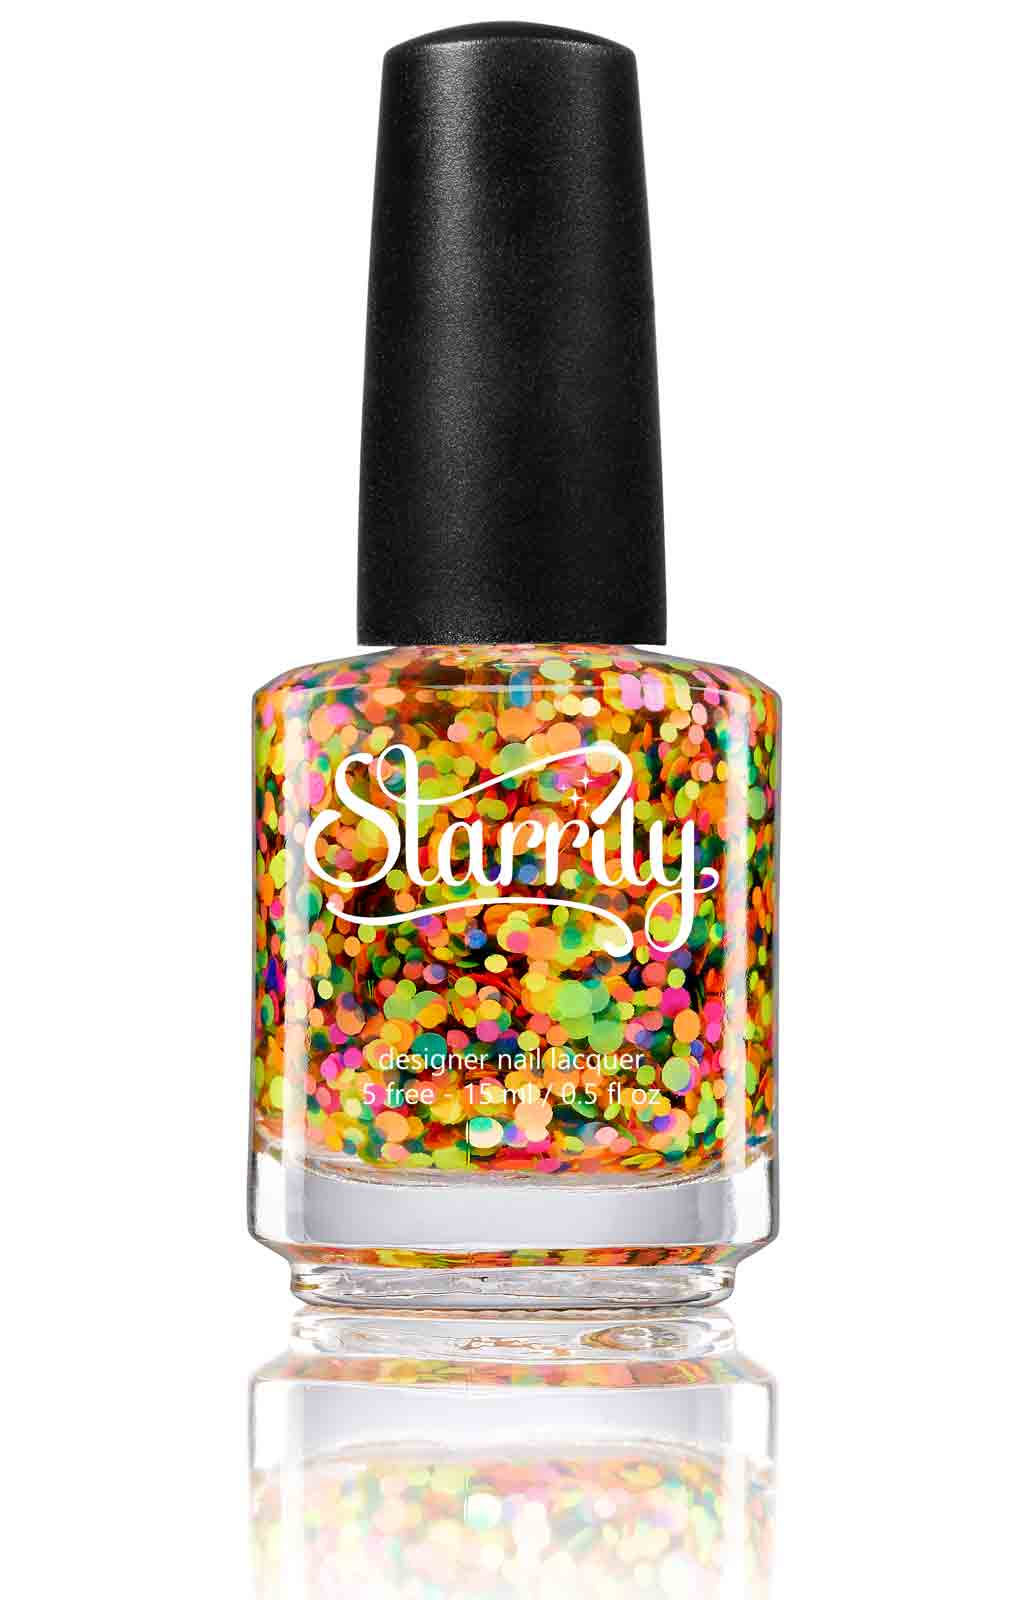 Gumballs has colorful bright neon glitter in a clear base